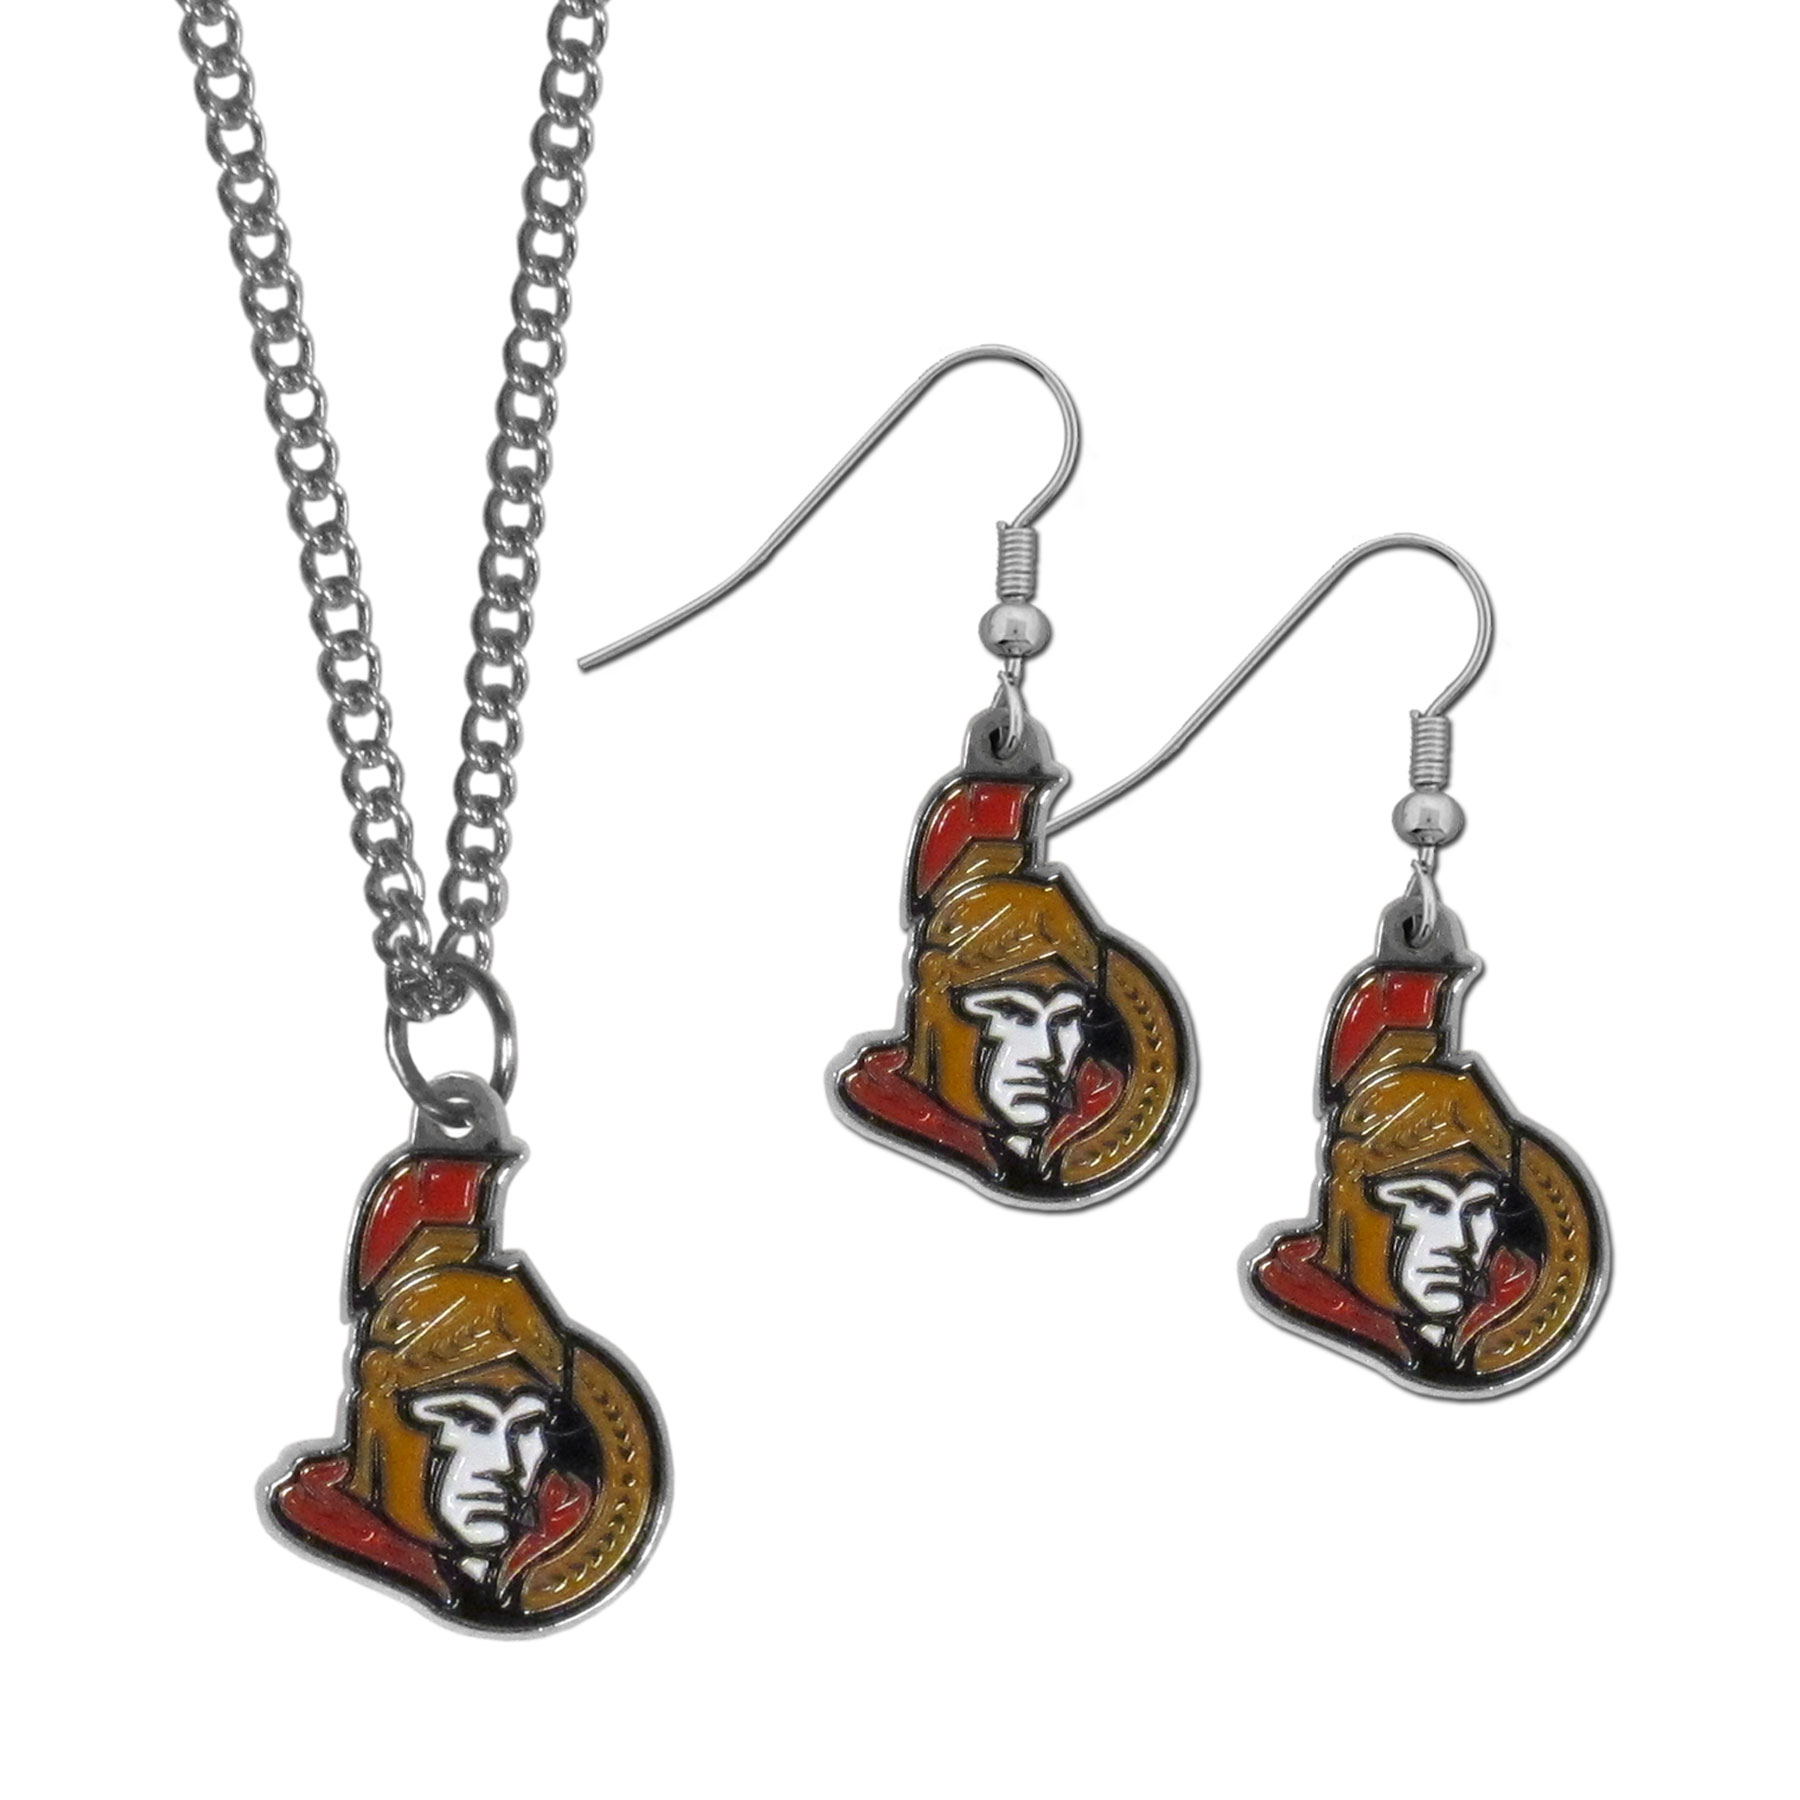 Ottawa Senators® Dangle Earrings and Chain Necklace Set - This classic jewelry set contains are most popular Ottawa Senators® dangle earrings and 22 inch chain necklace. The trendy, dangle earrings are lightweight and feature a fully cast metal team charm with enameled team colors. The matching necklace completes this fashion forward combo and is a spirited set that is perfect for game day but nice enough for everyday.